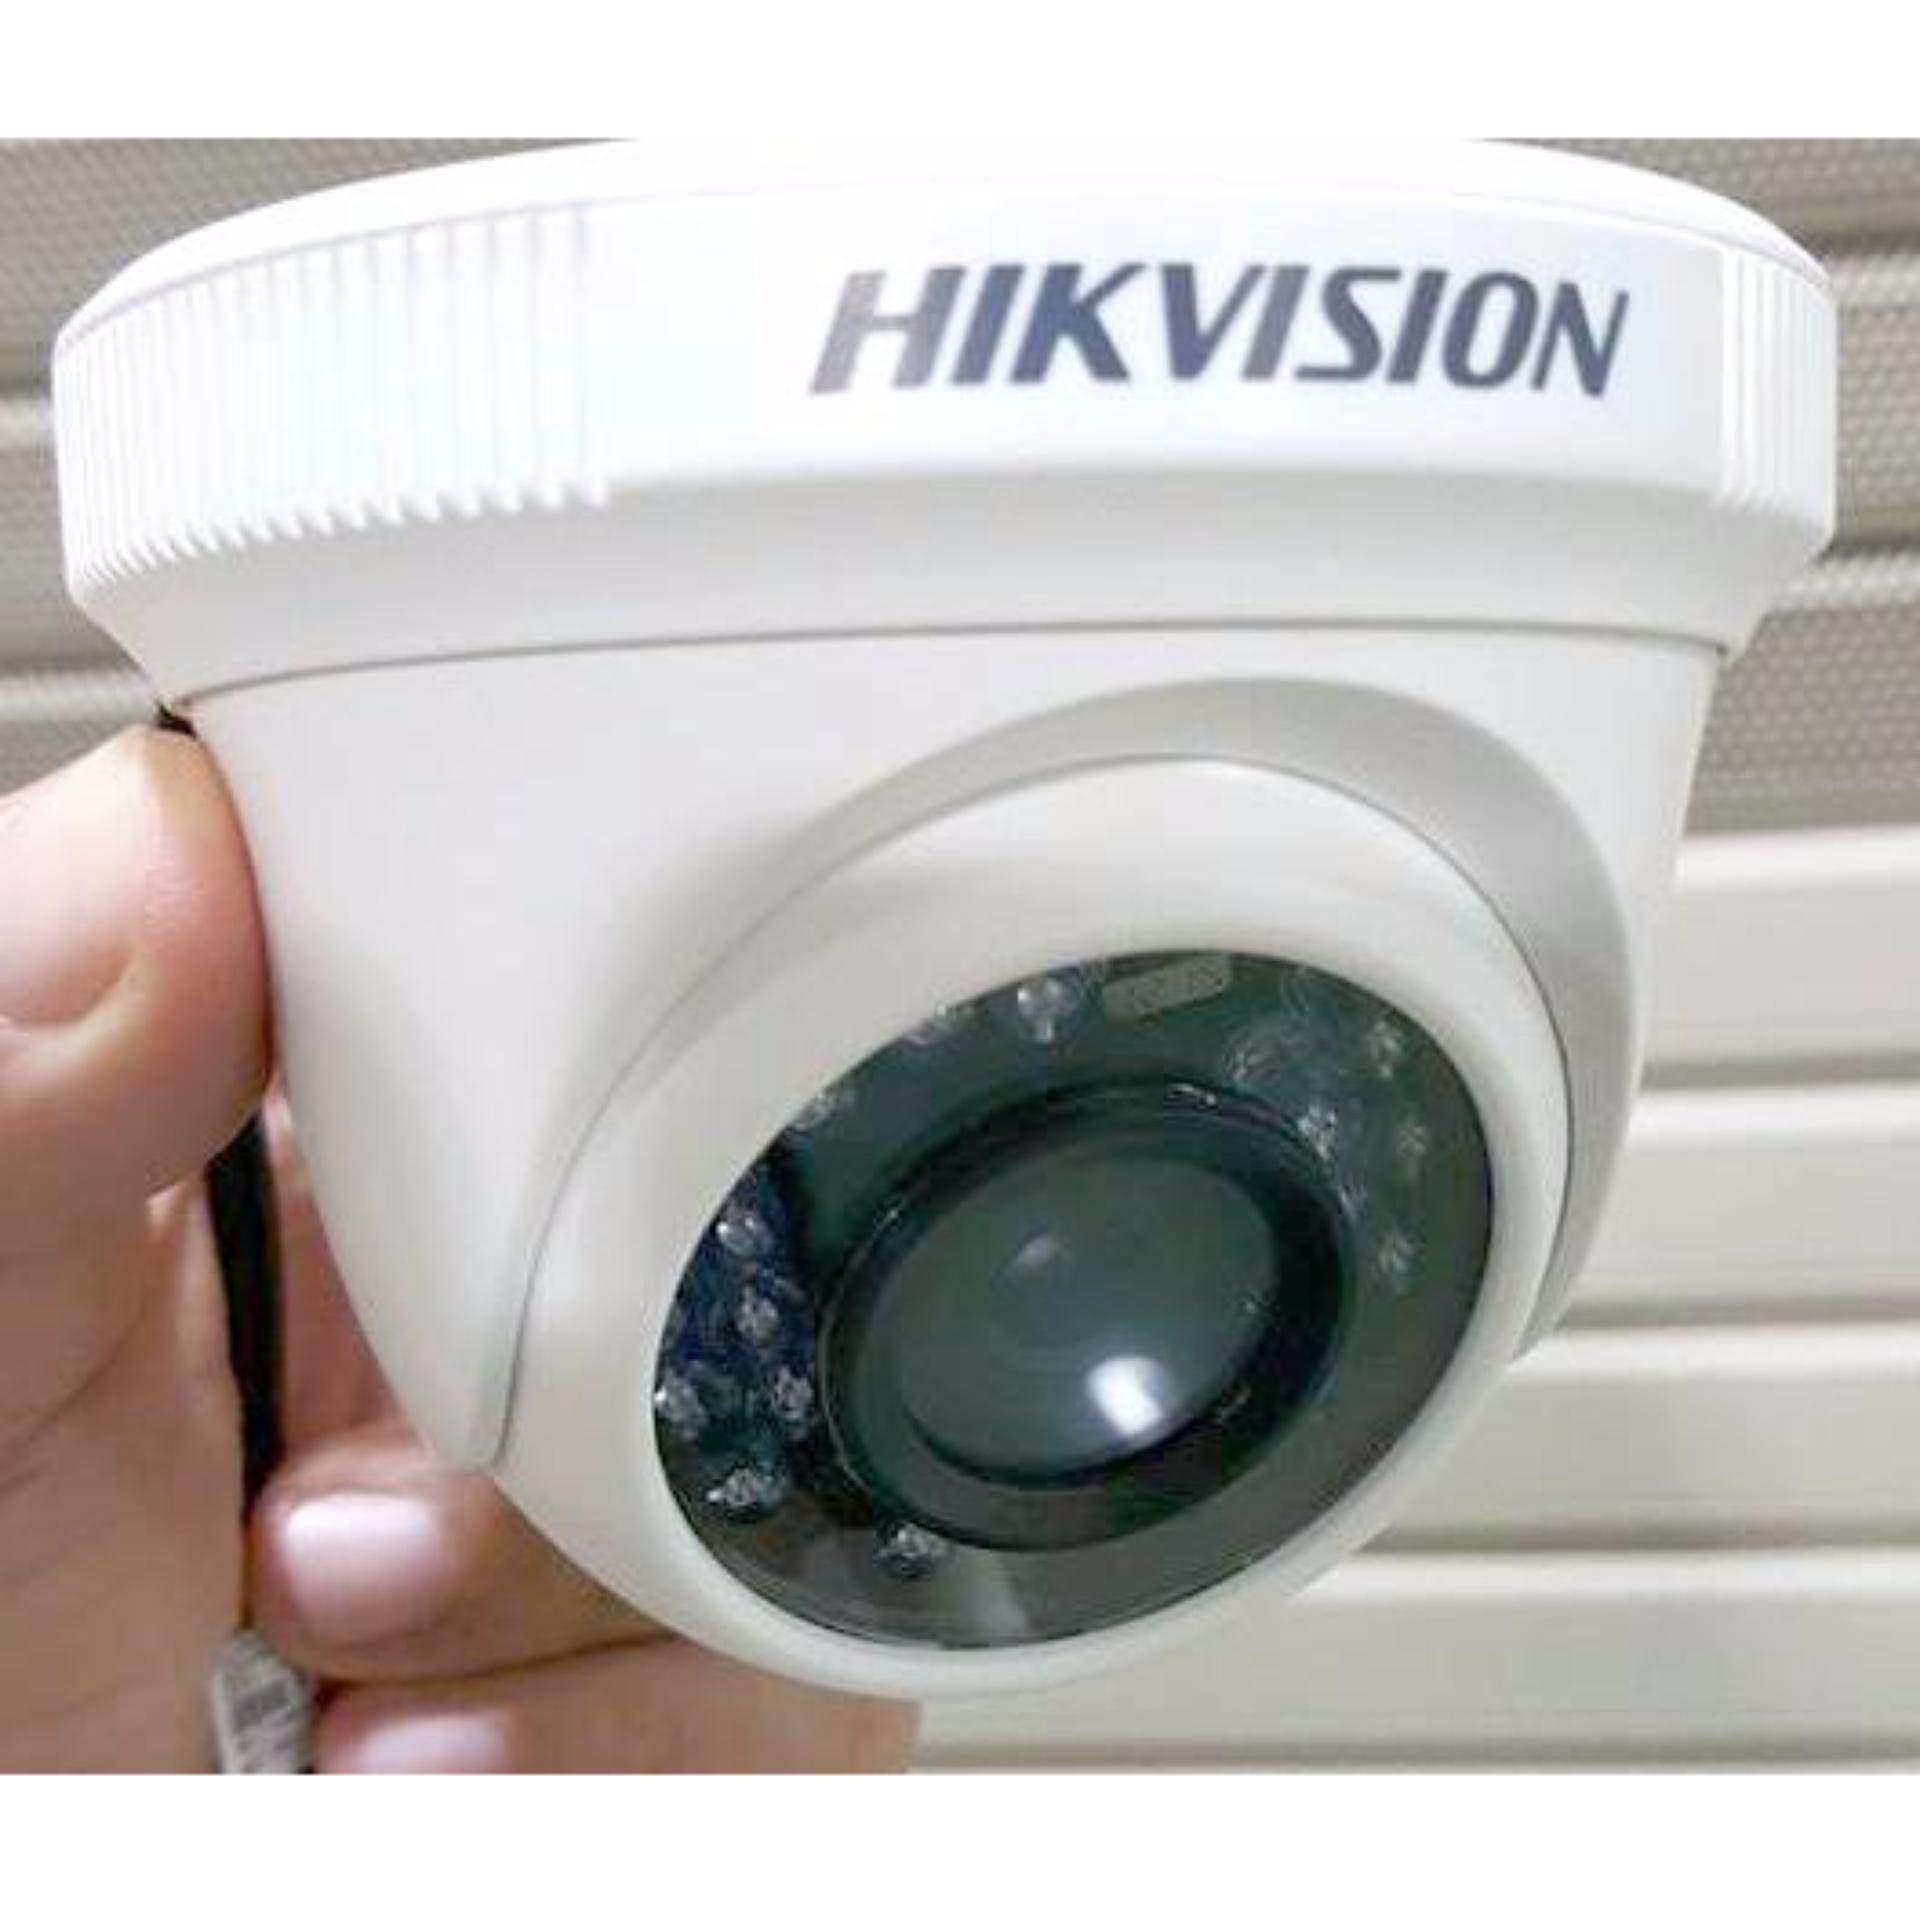 ... Hikvision Analog Camera DS-2CE55A2P-IRP ...